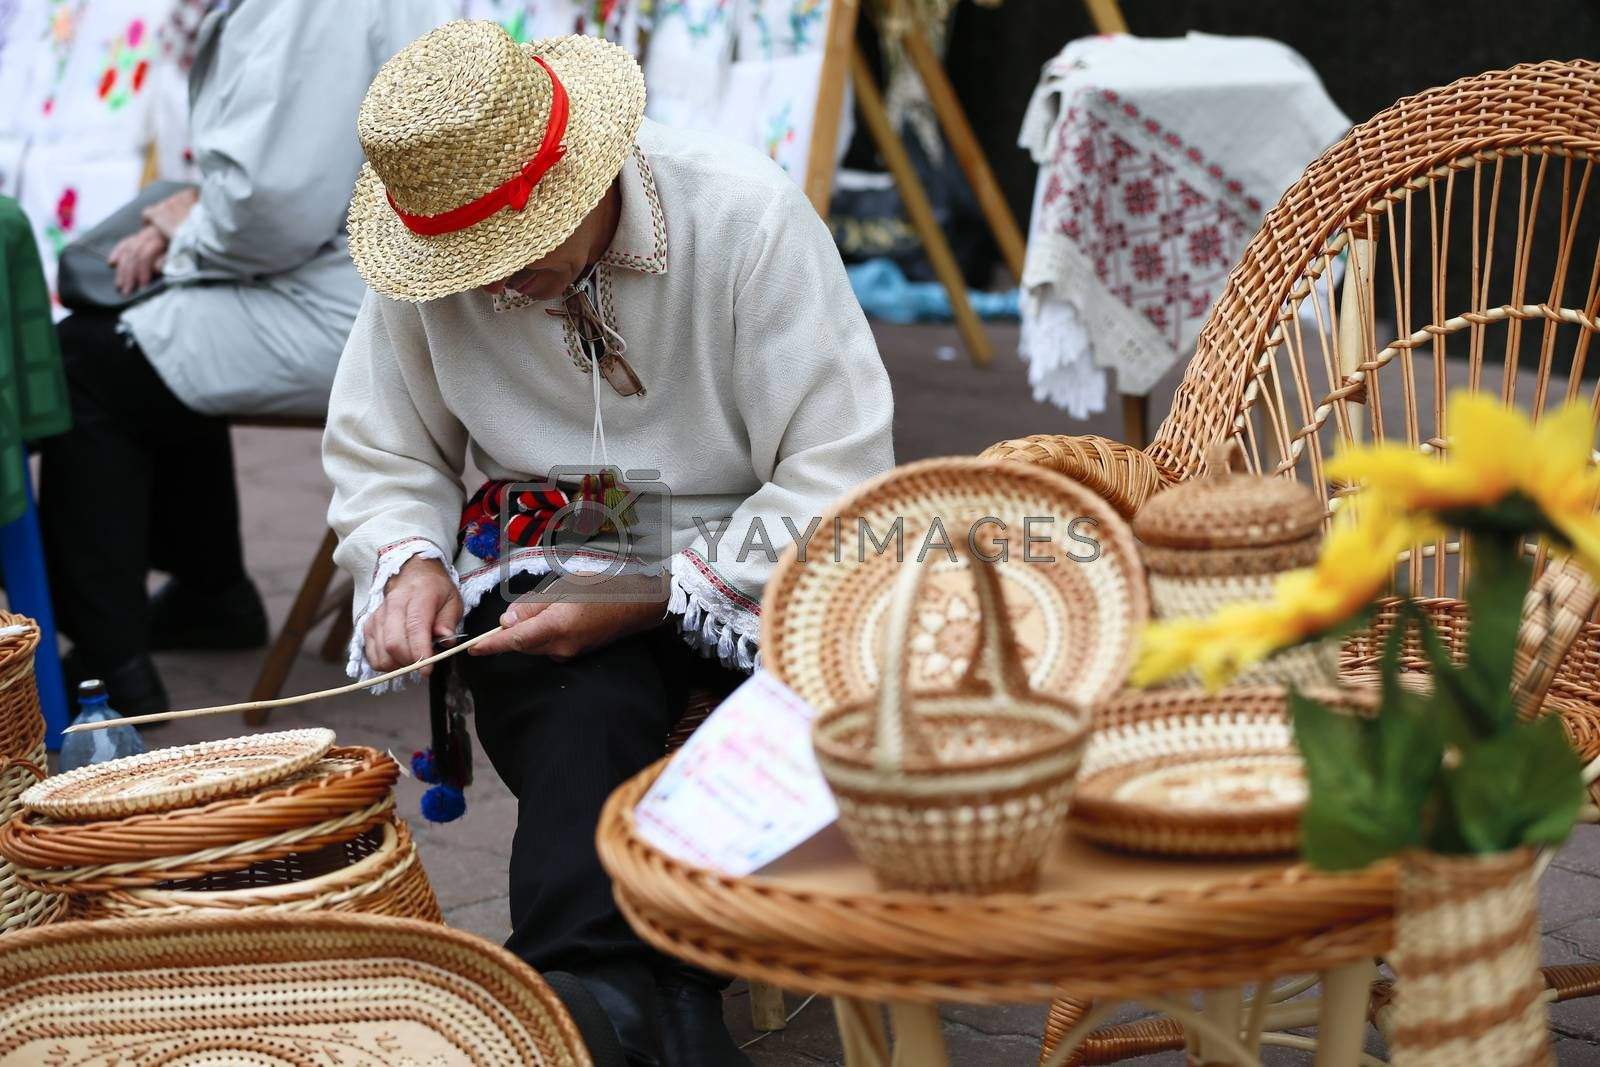 A man in a straw hat braids from a vine.Products from straw. Ethnic handicraft. Man master of straw